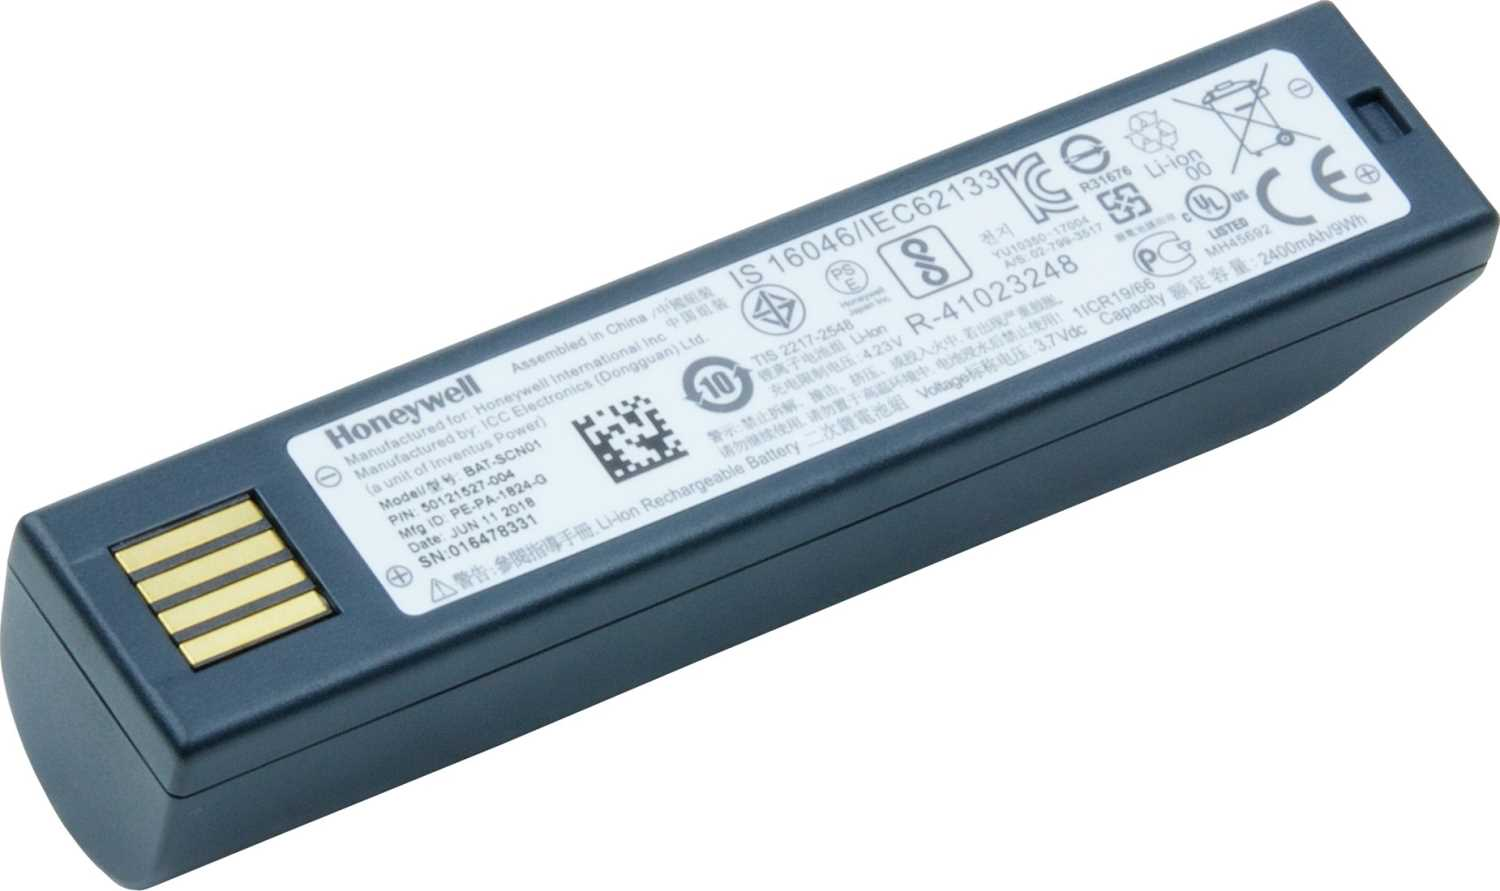 Аккумулятор Honeywell BAT-SCN01A для 1202/1452/1902/1911i/1981i/3820/3820i - интернет-магазин Skyey.ru